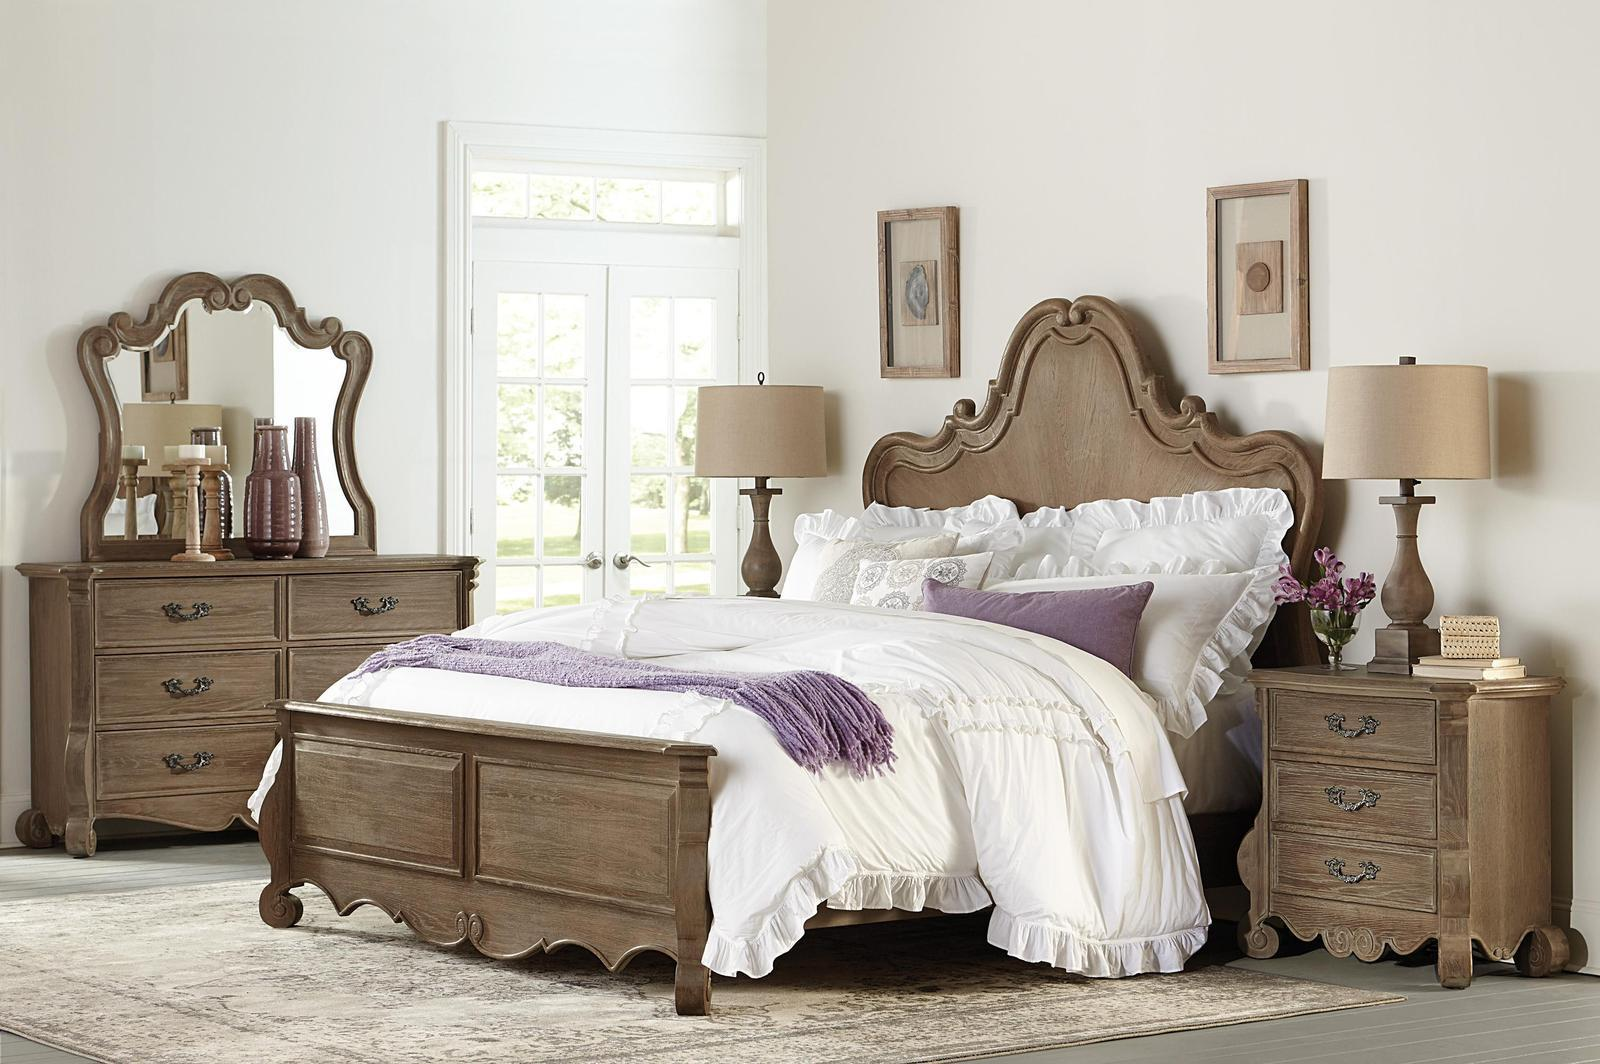 crenshaw french country scrolled frame 4pc bedroom set cal